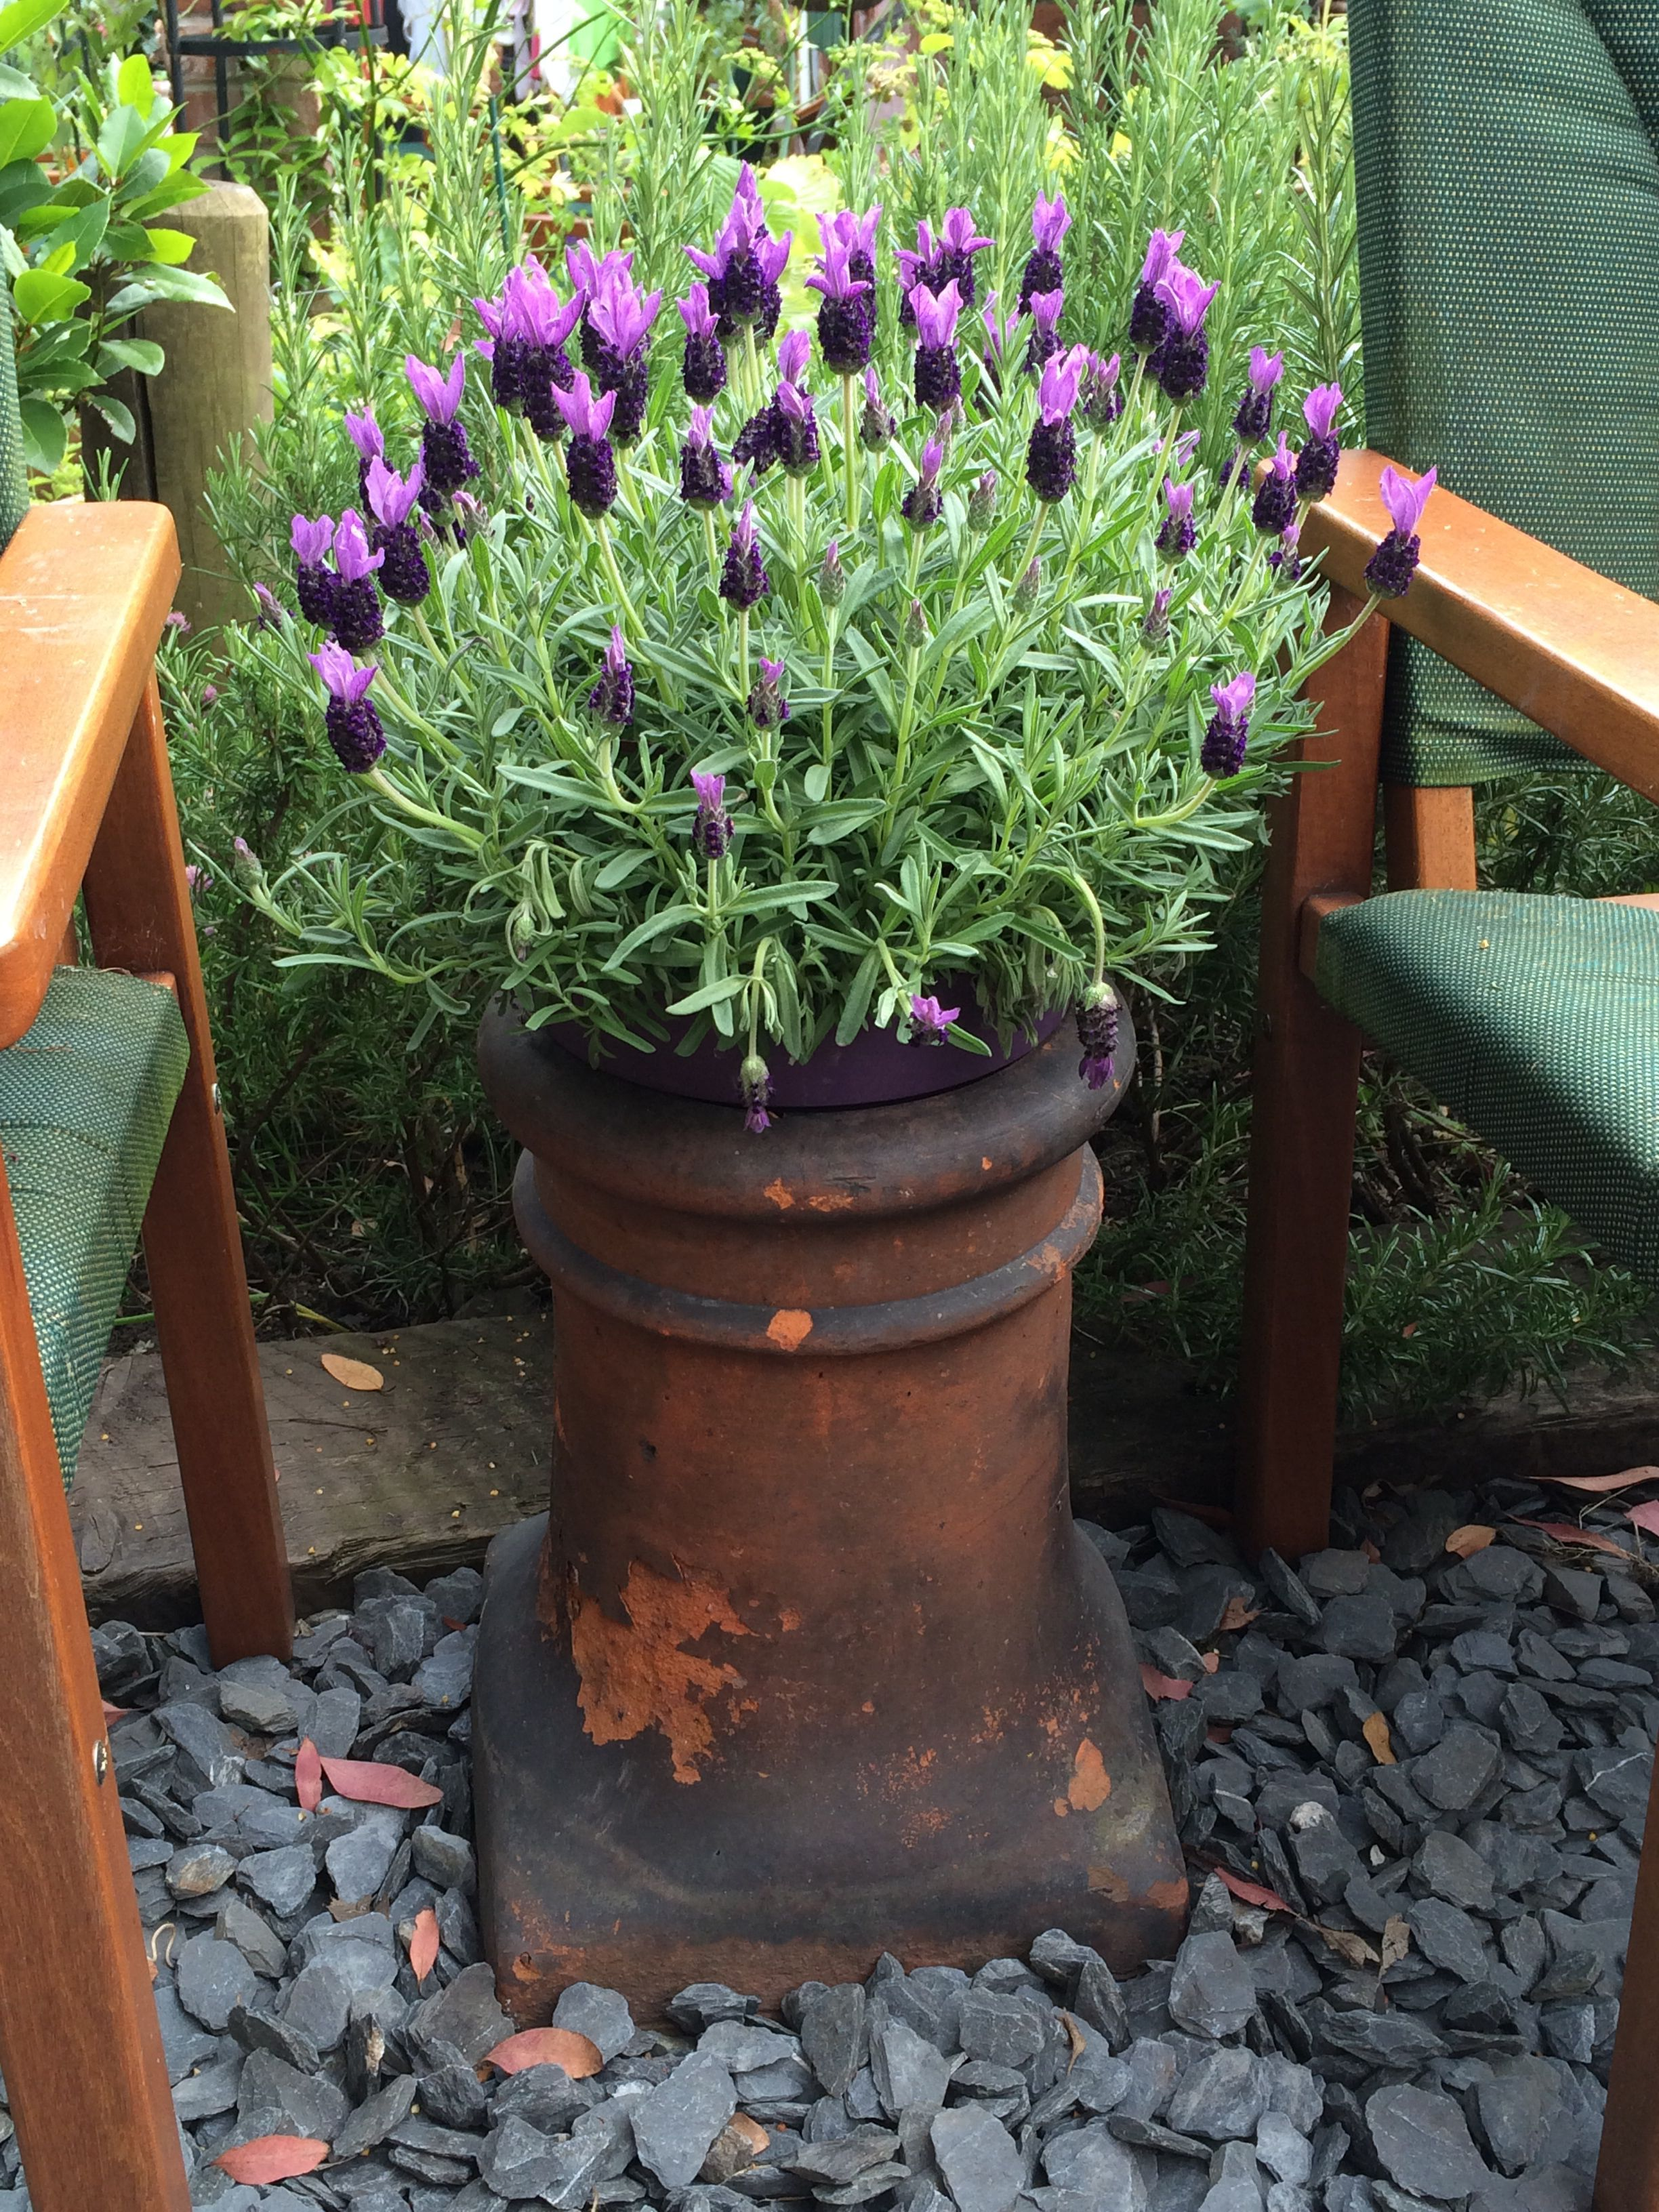 Chimney Pot Lavender Chimney Pot Lavender